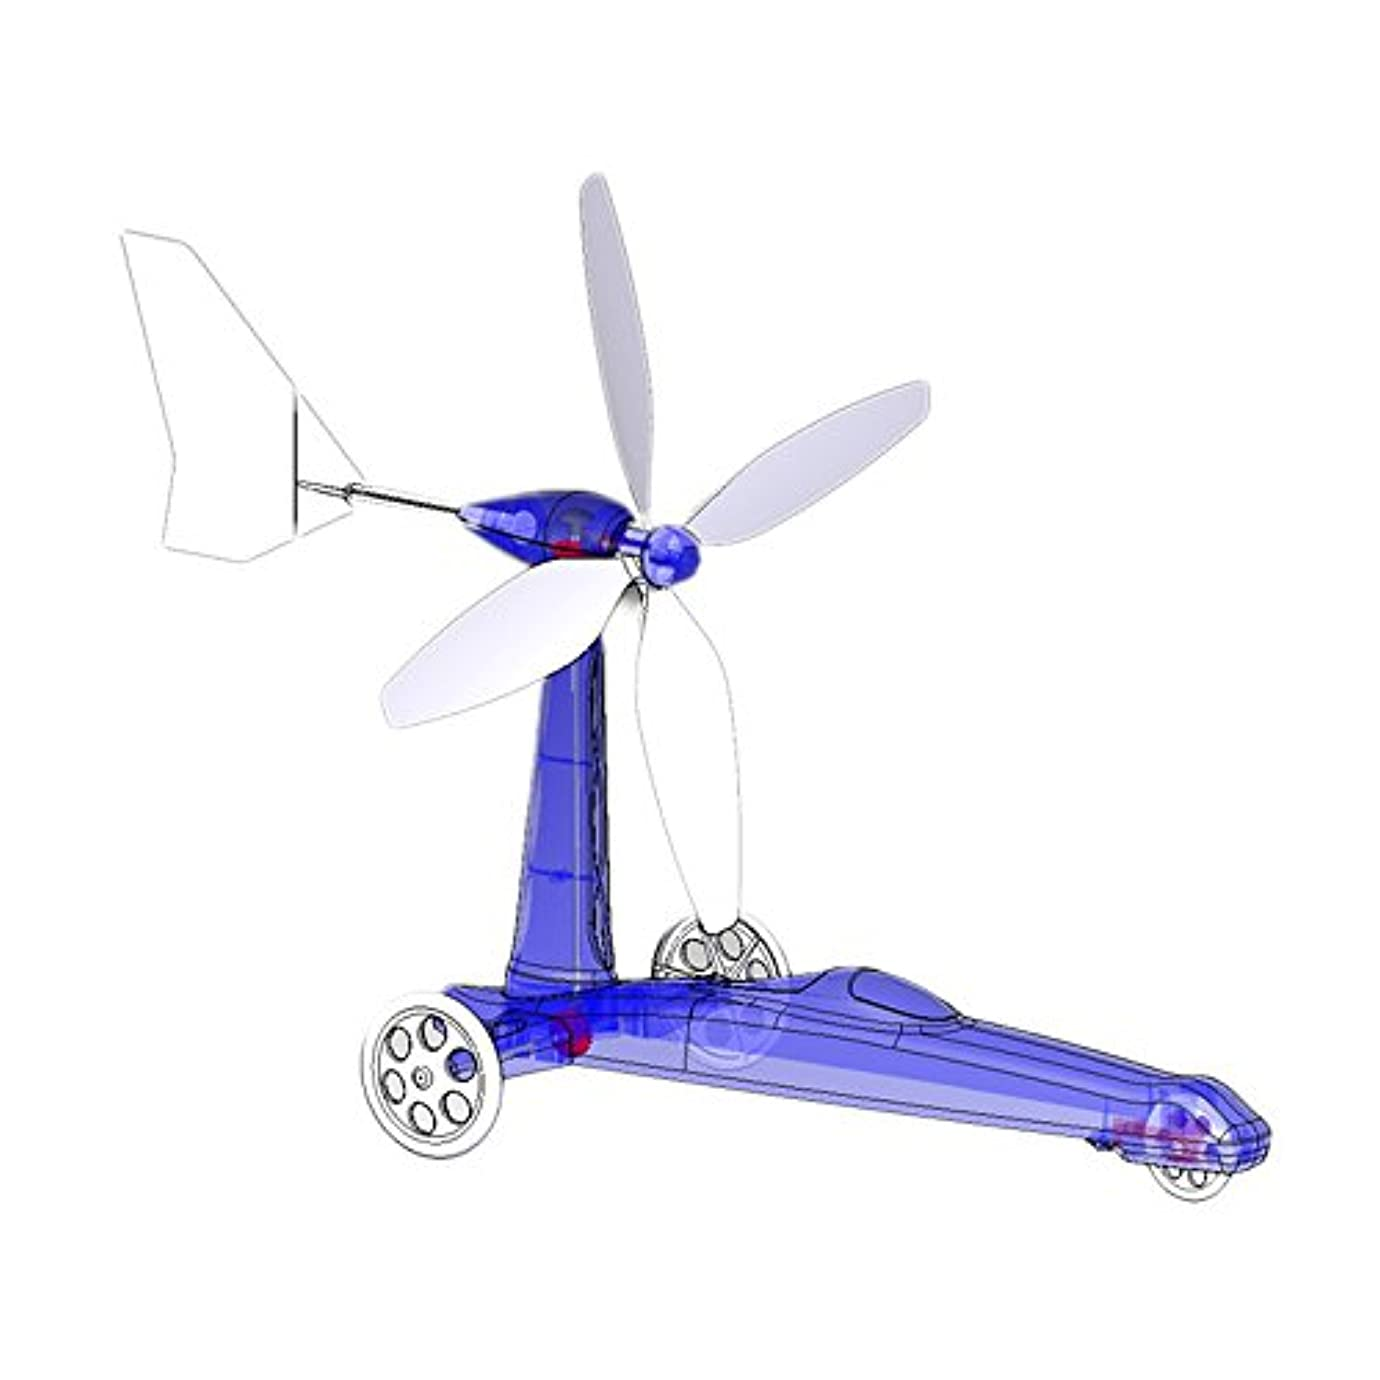 製造まあ近々Academy Kids Hobby Military Toy Wind Powered Car